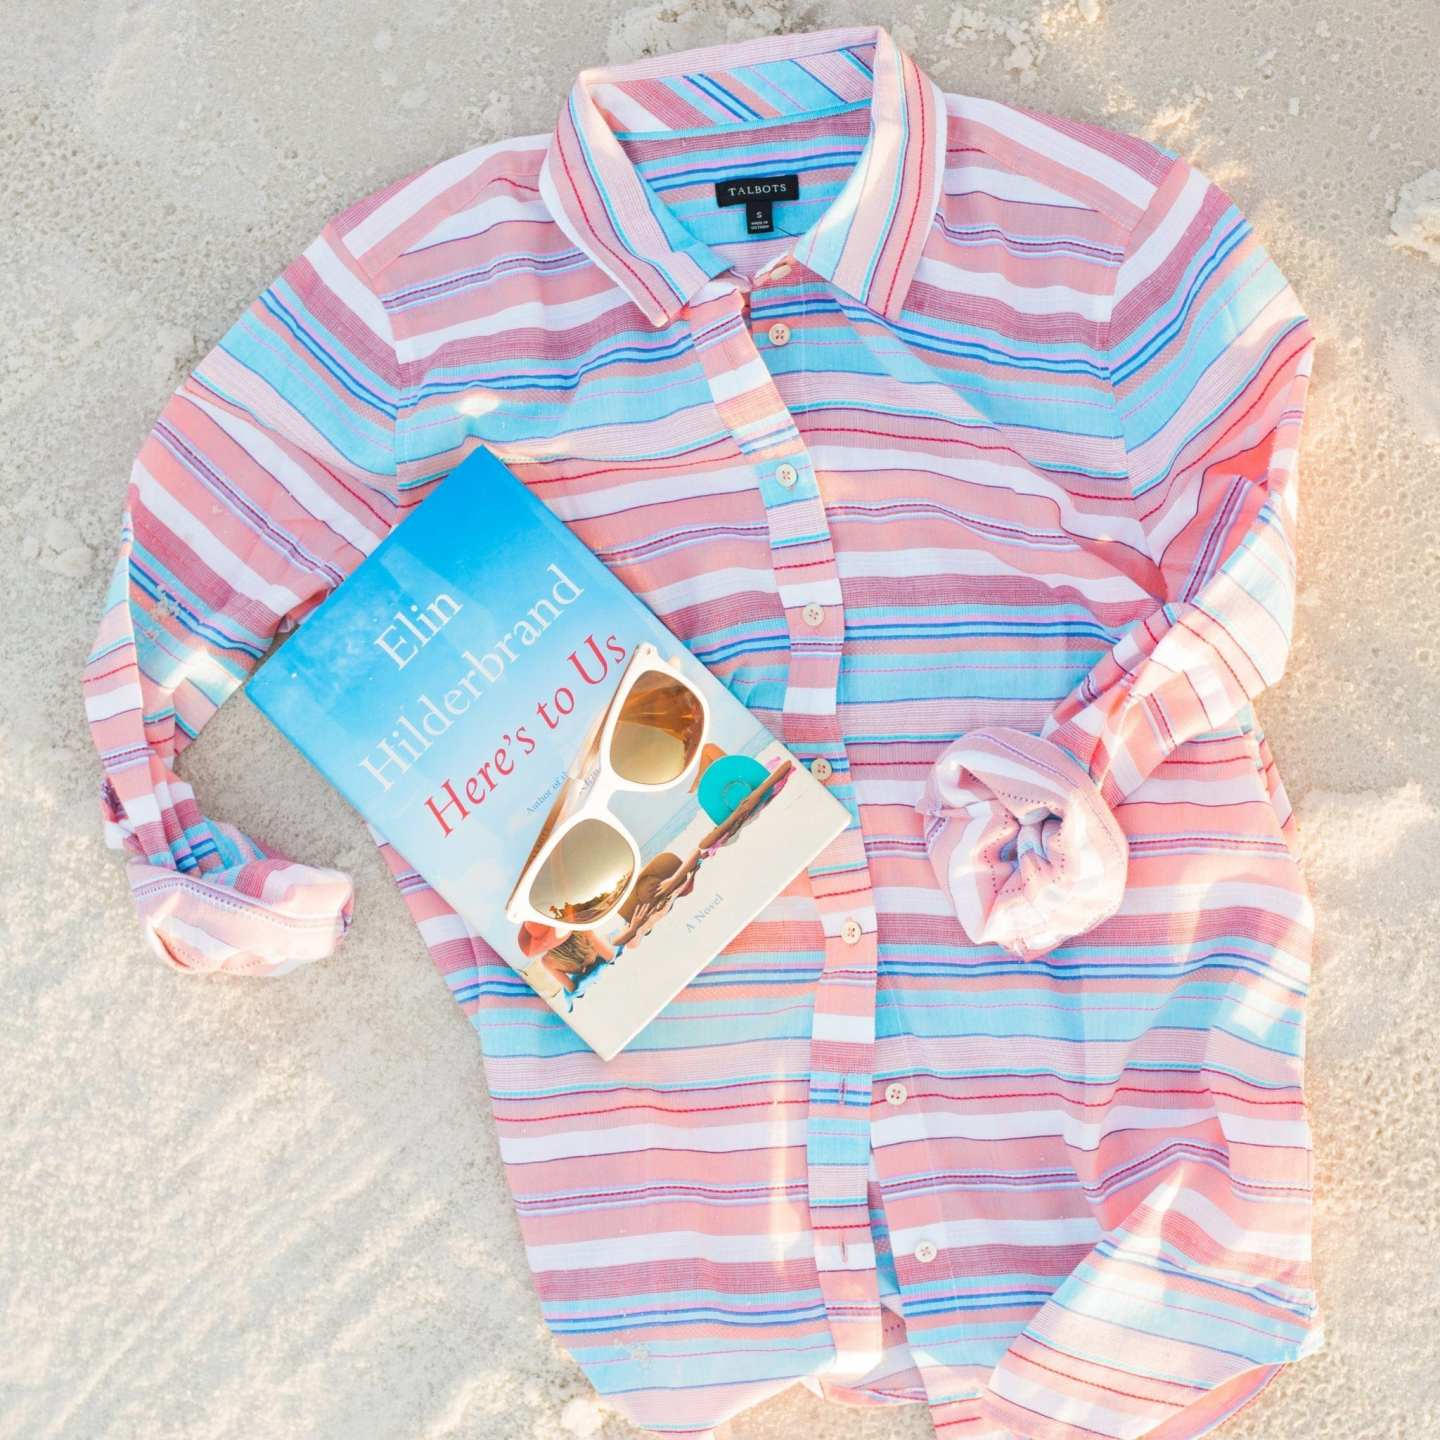 Talbots Sunglasses and book by Elin Hilderbrand.